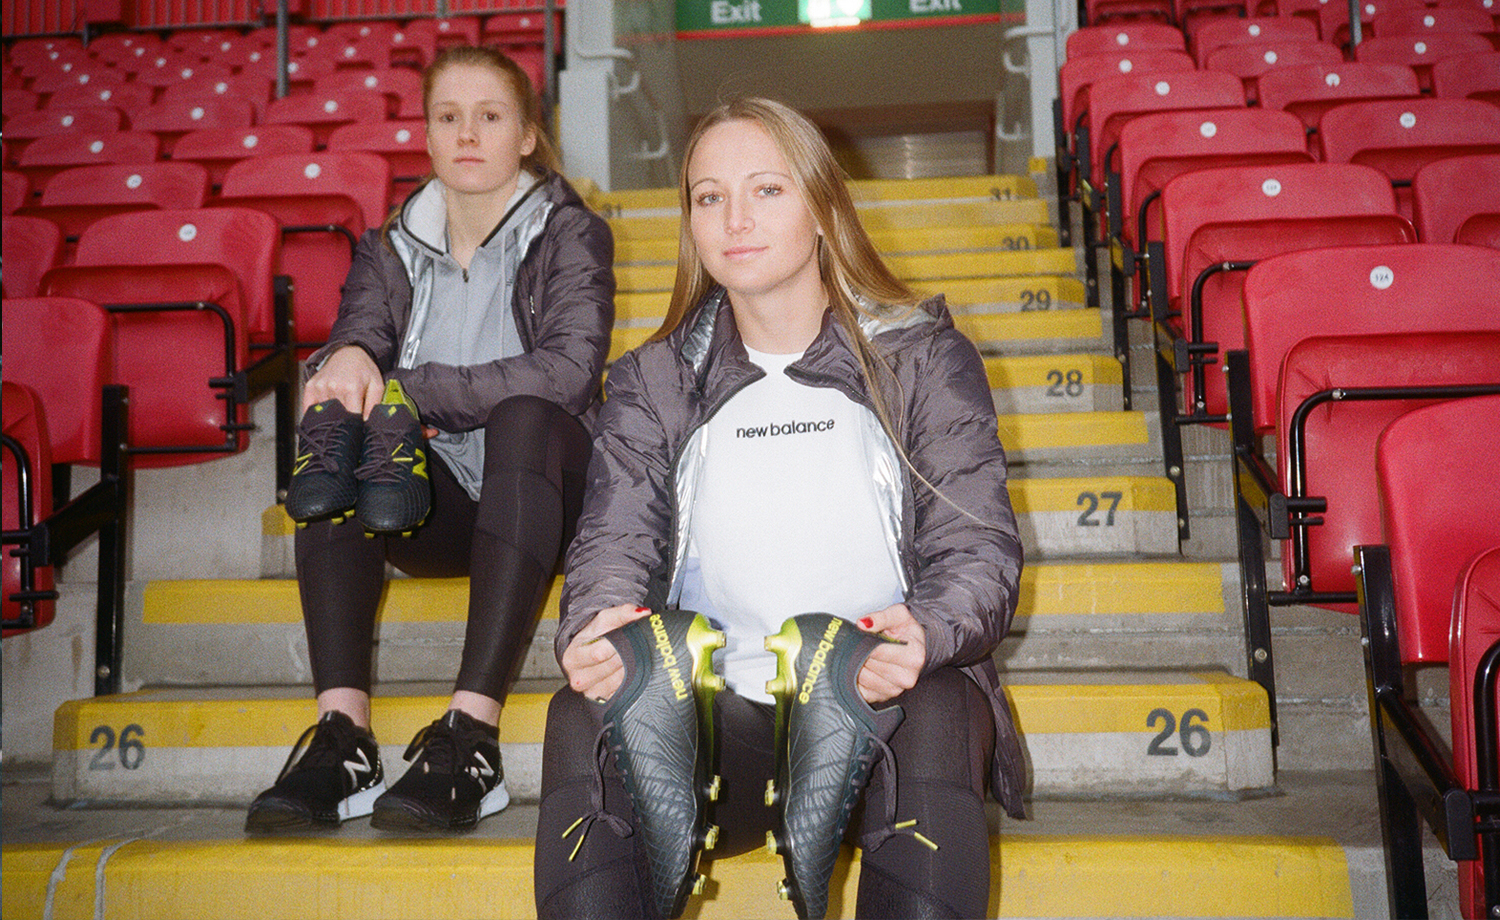 """This Is What You Dream About"": Amy Rodgers and Jemma Purfield Are the Young Ballers Taking the Women's Game to New Levels for Liverpool"